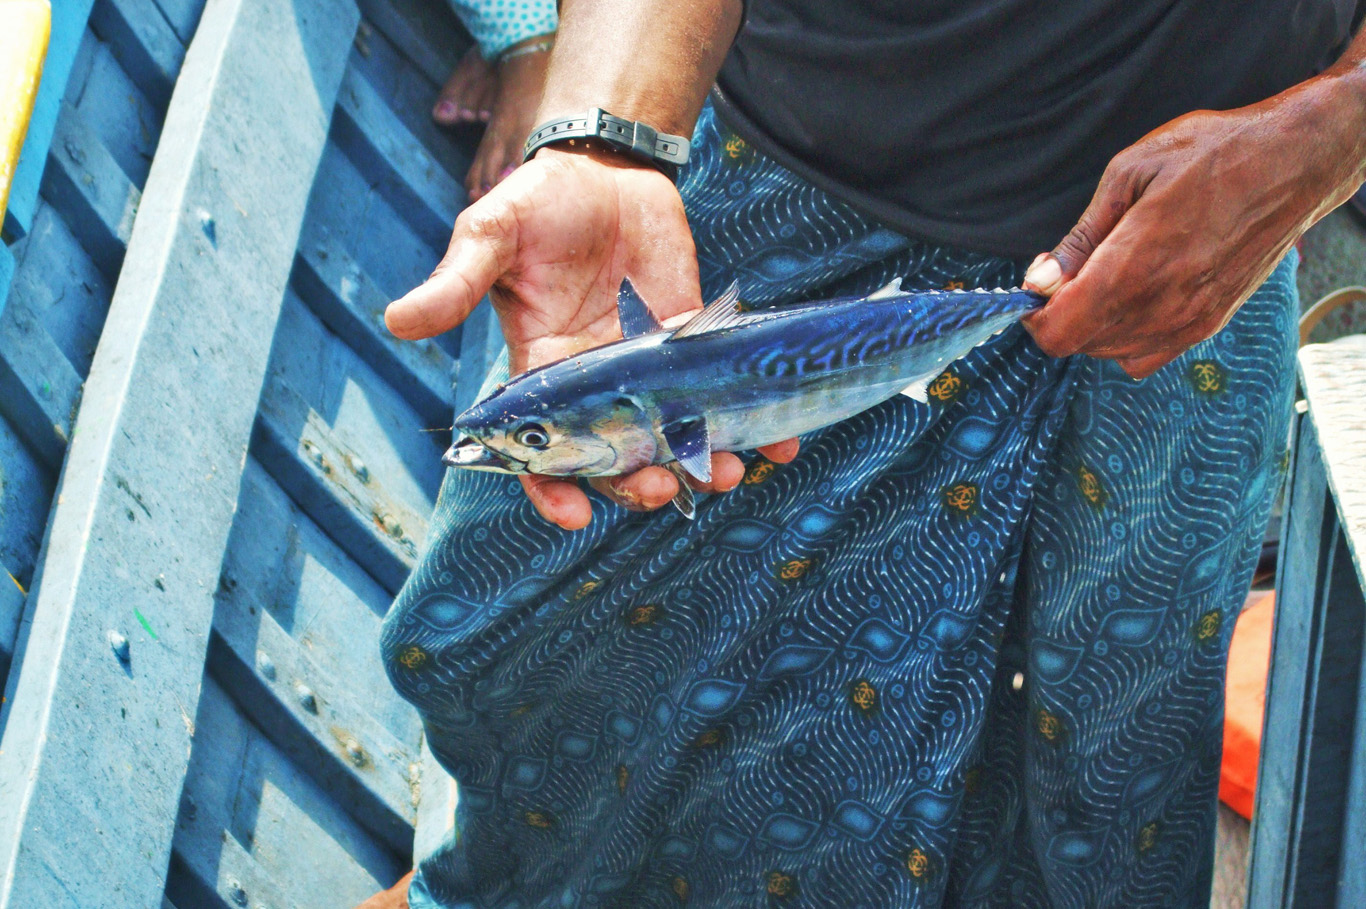 Mackerel caught by one of the fishermen